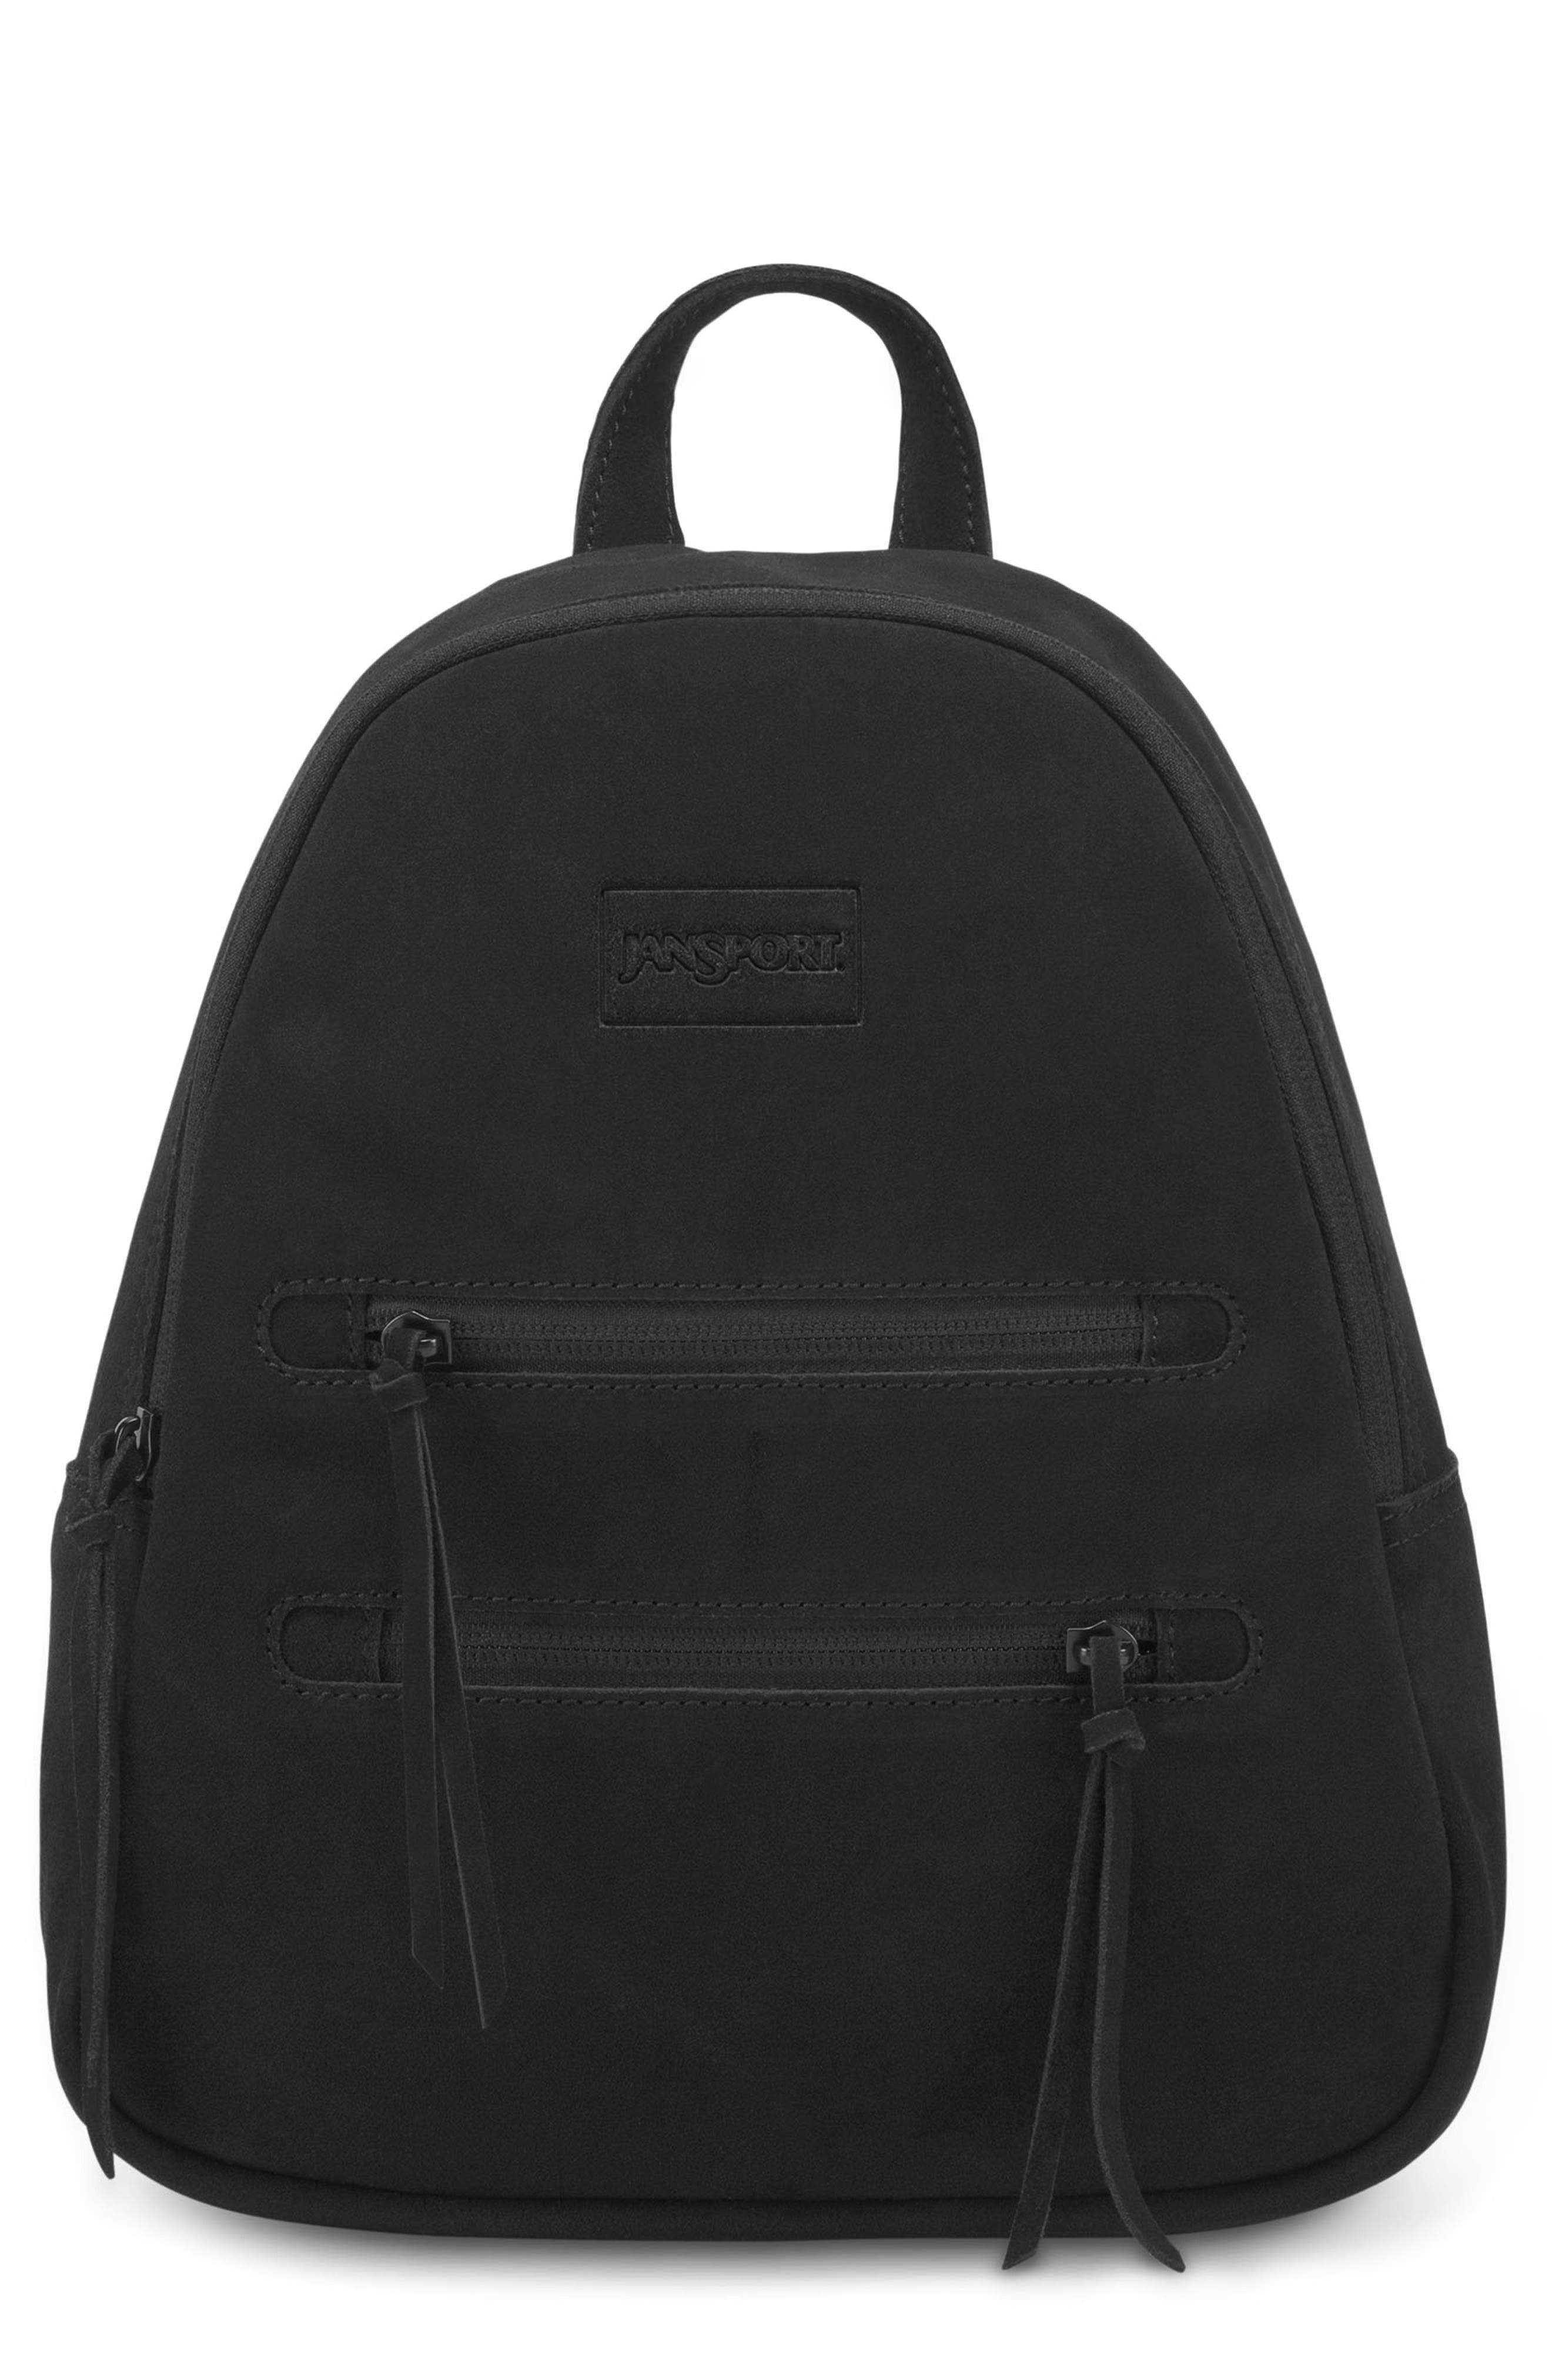 JANSPORT Desert Collection Mini Backpack - Black